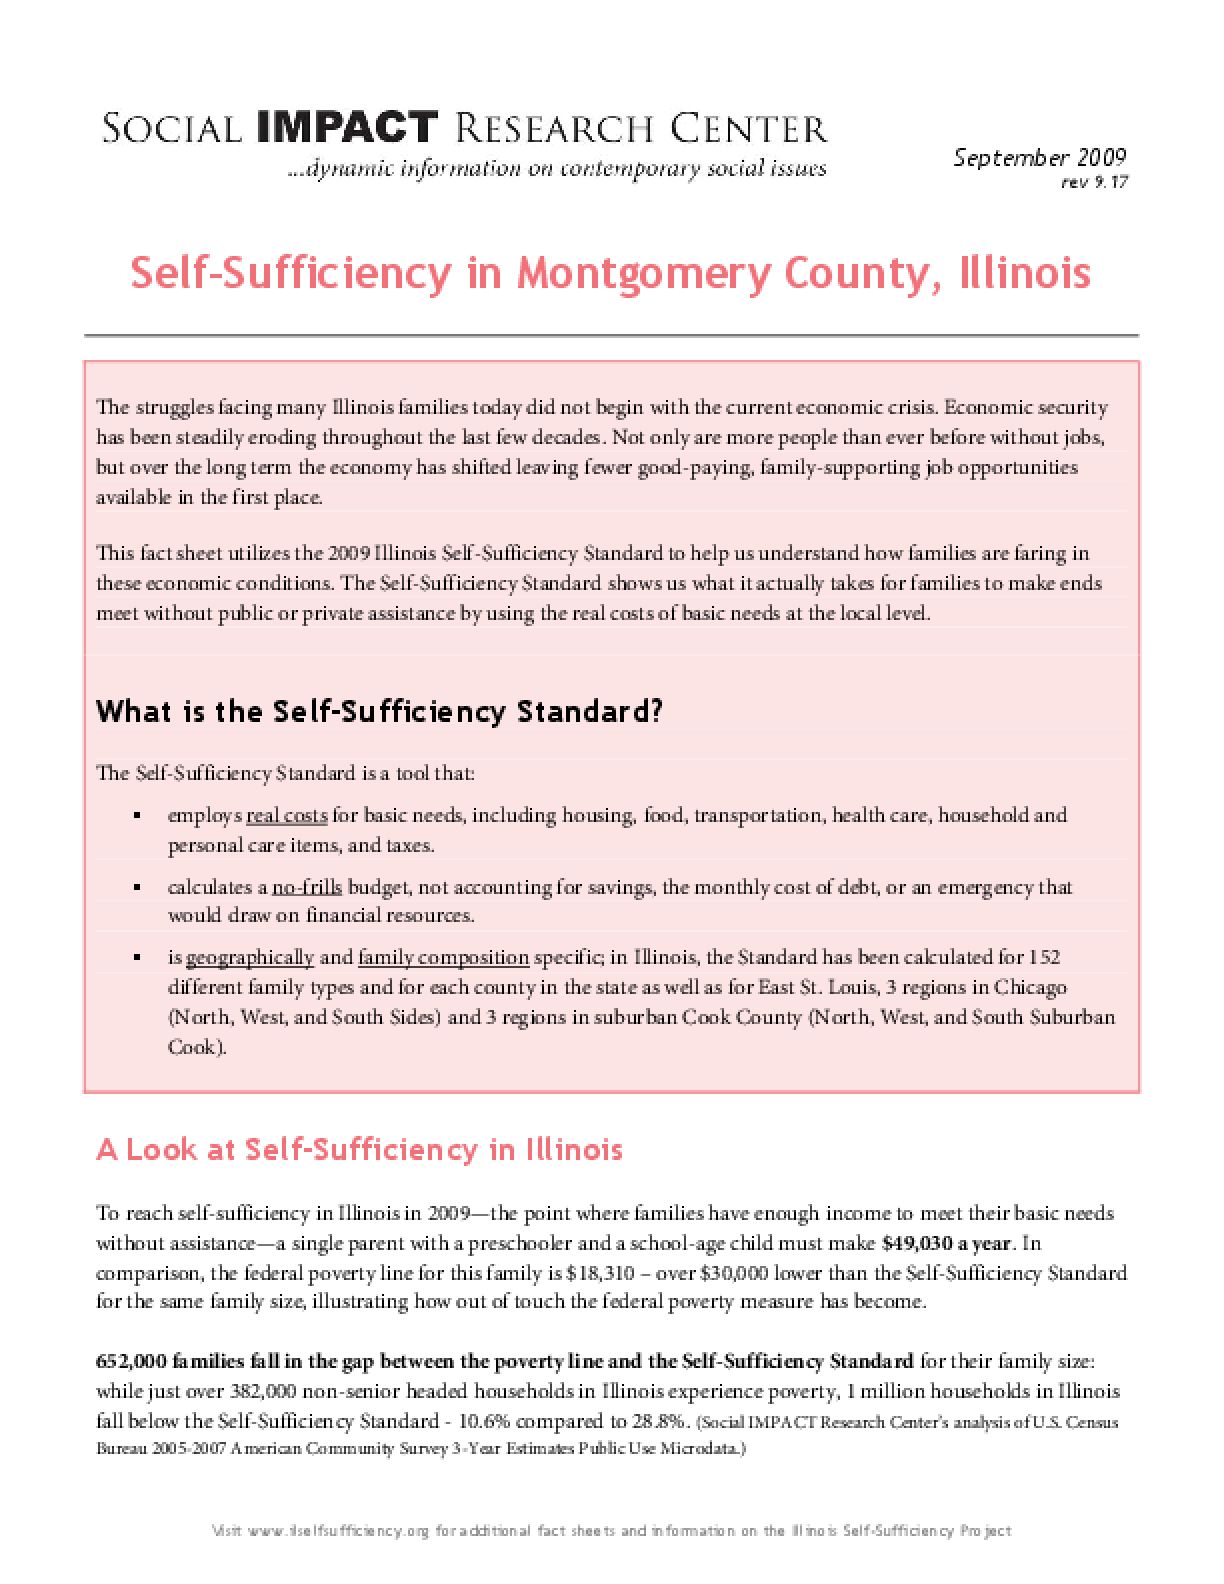 Self-Sufficiency in Montgomery County, Illinois